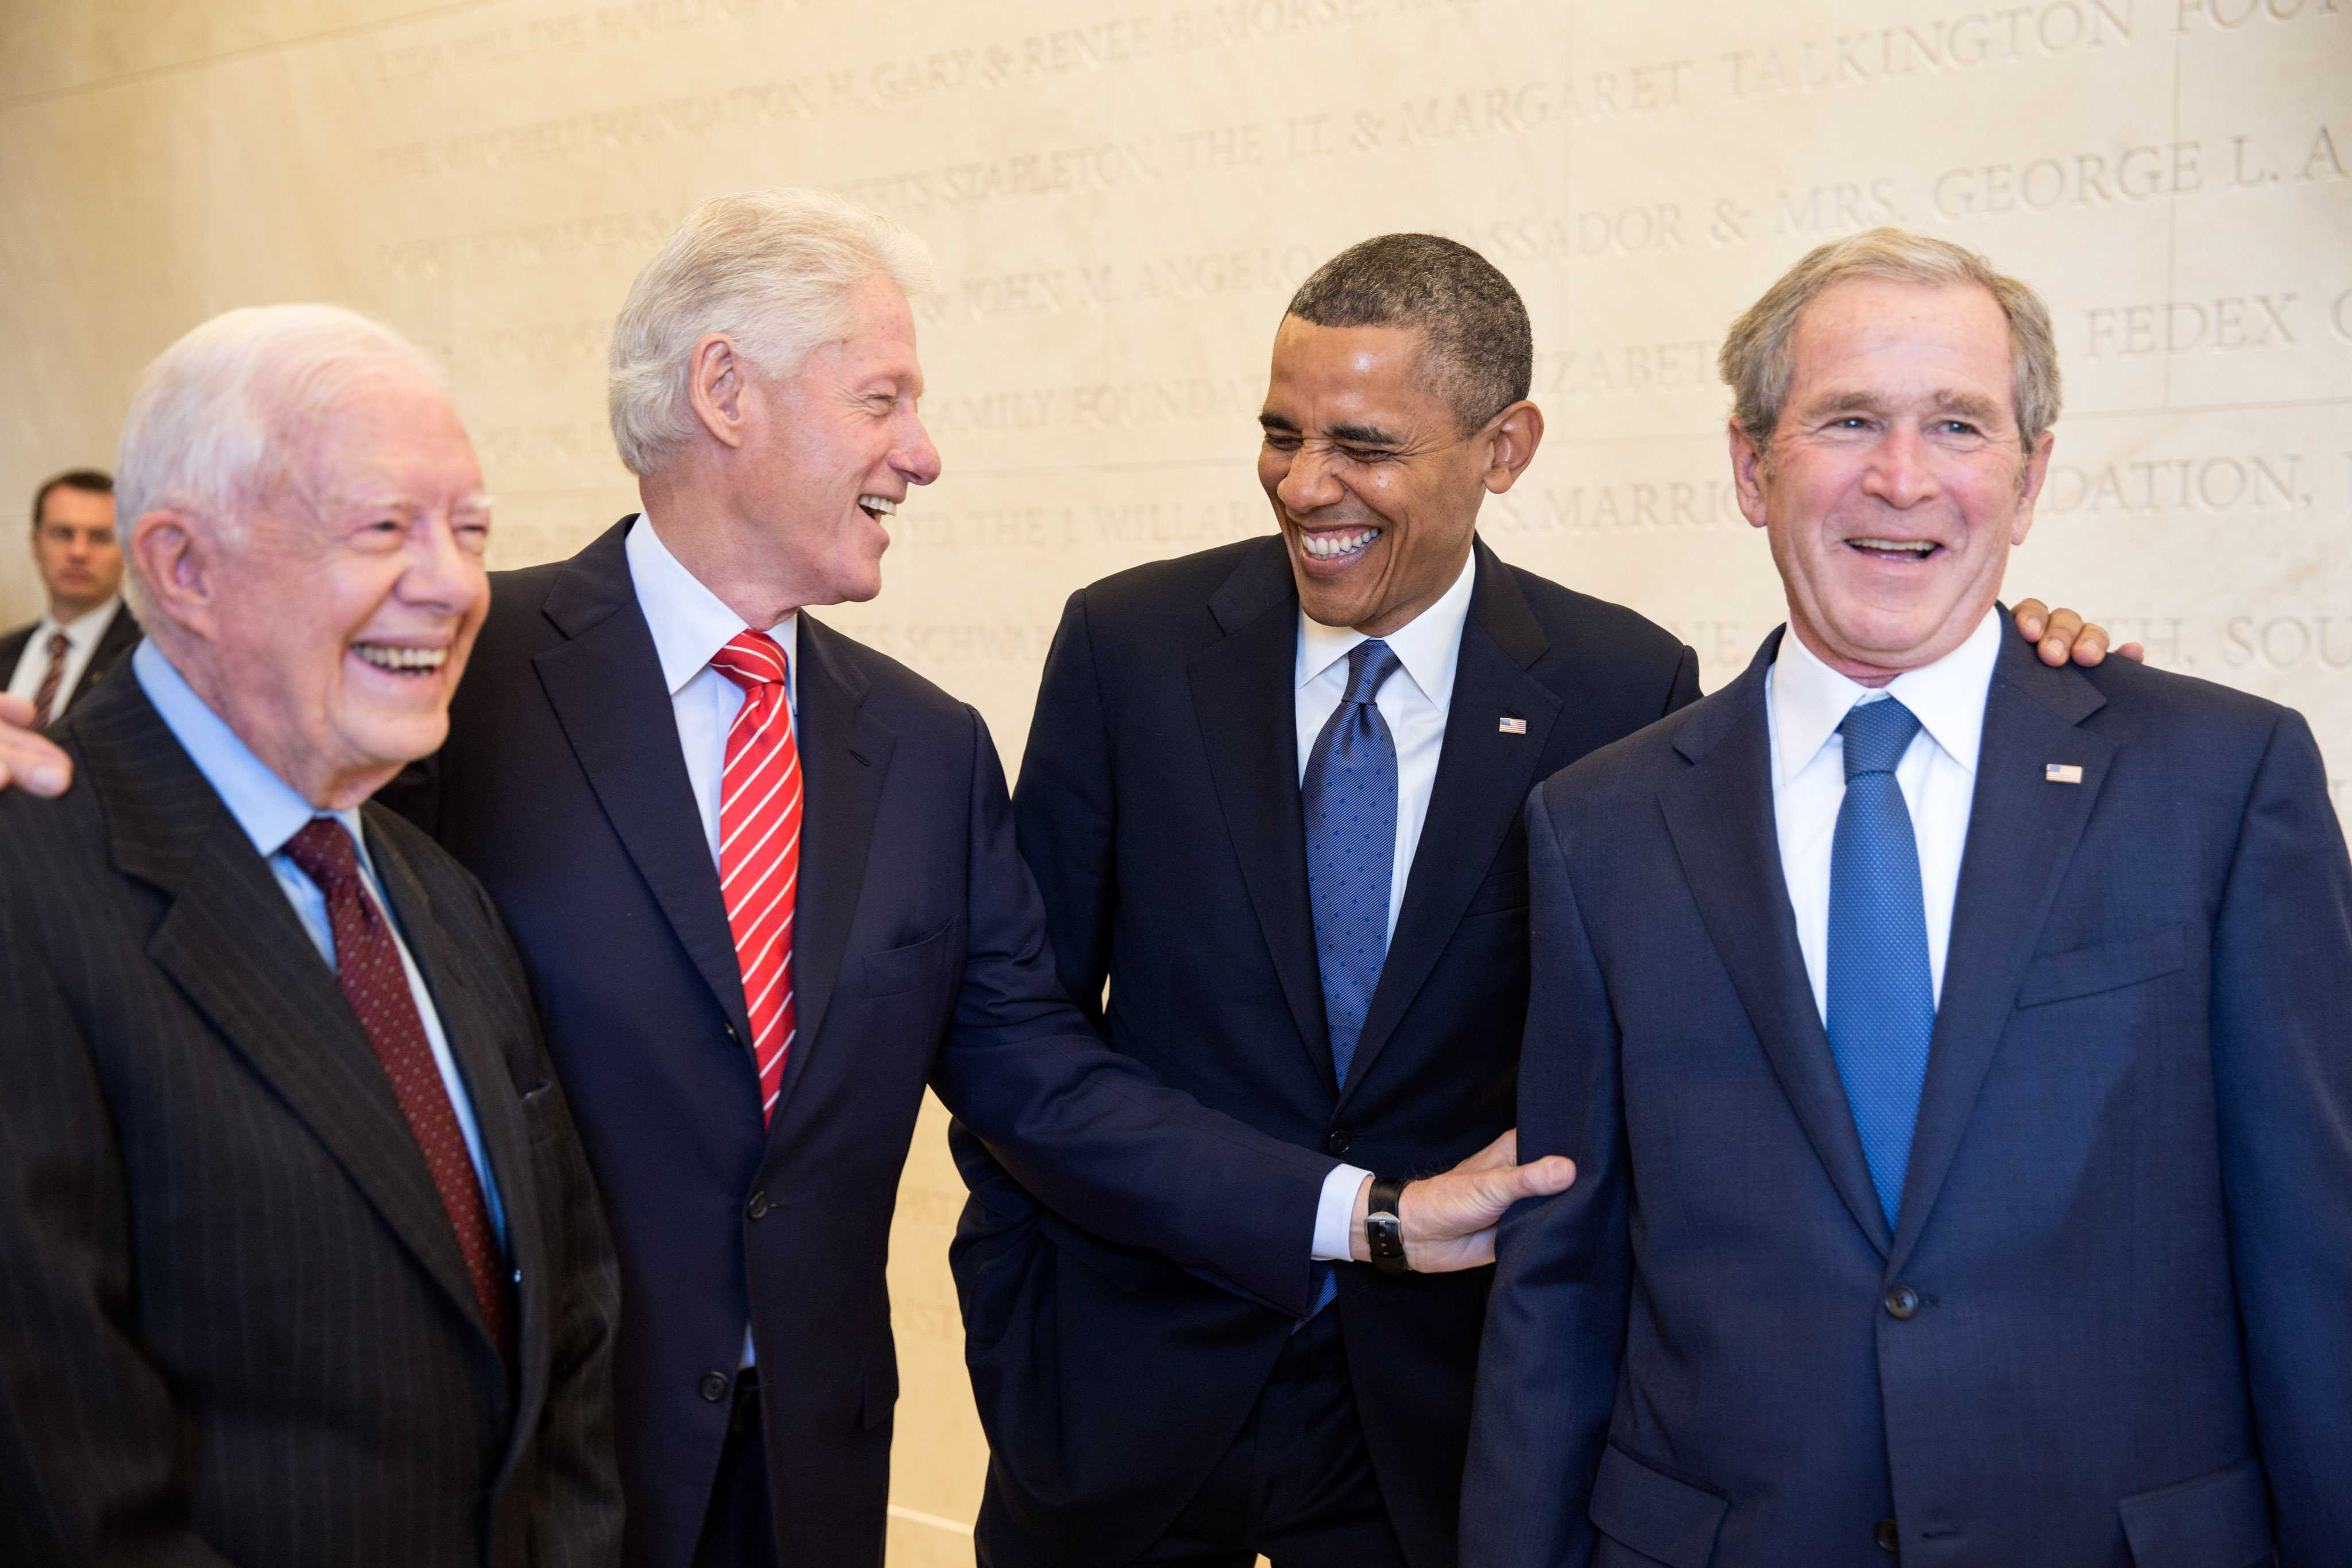 Courtesty of: https://upload.wikimedia.org/wikipedia/commons/b/b3/Four_U.S._presidents_in_2013.jpg